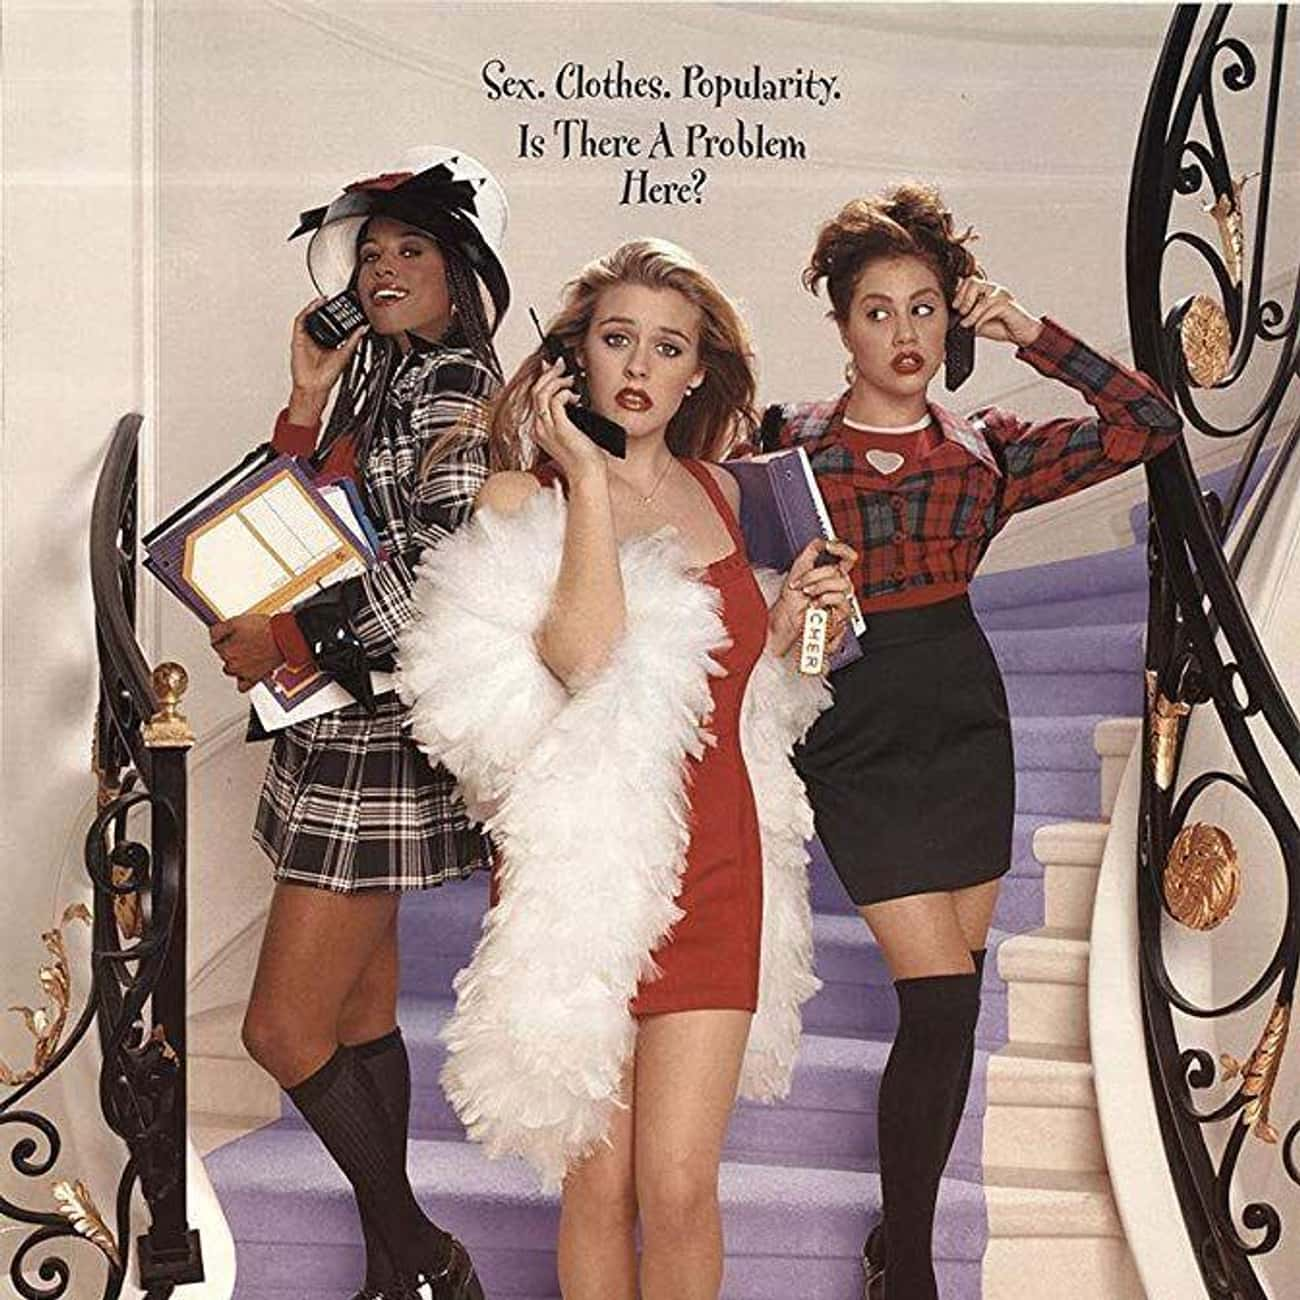 Clueless is listed (or ranked) 3 on the list The Funniest Teen Parody Movies, Ranked